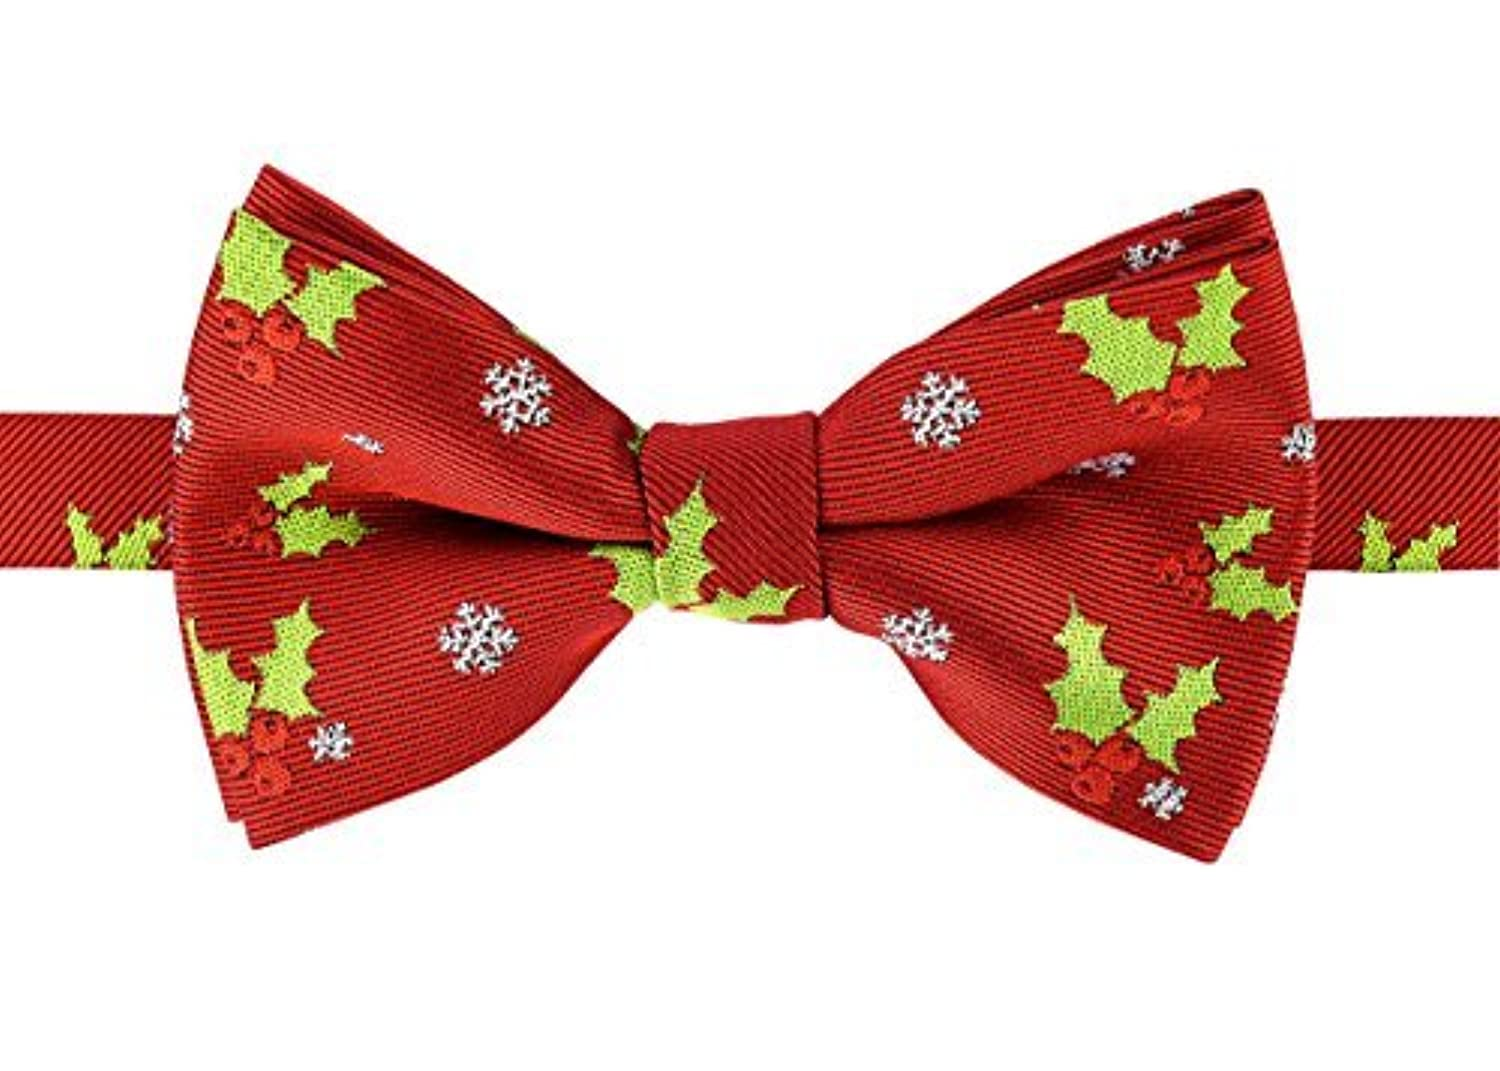 Retreez Christmas Holly Leaves and Berries Woven pre-tied男の子の蝶ネクタイ